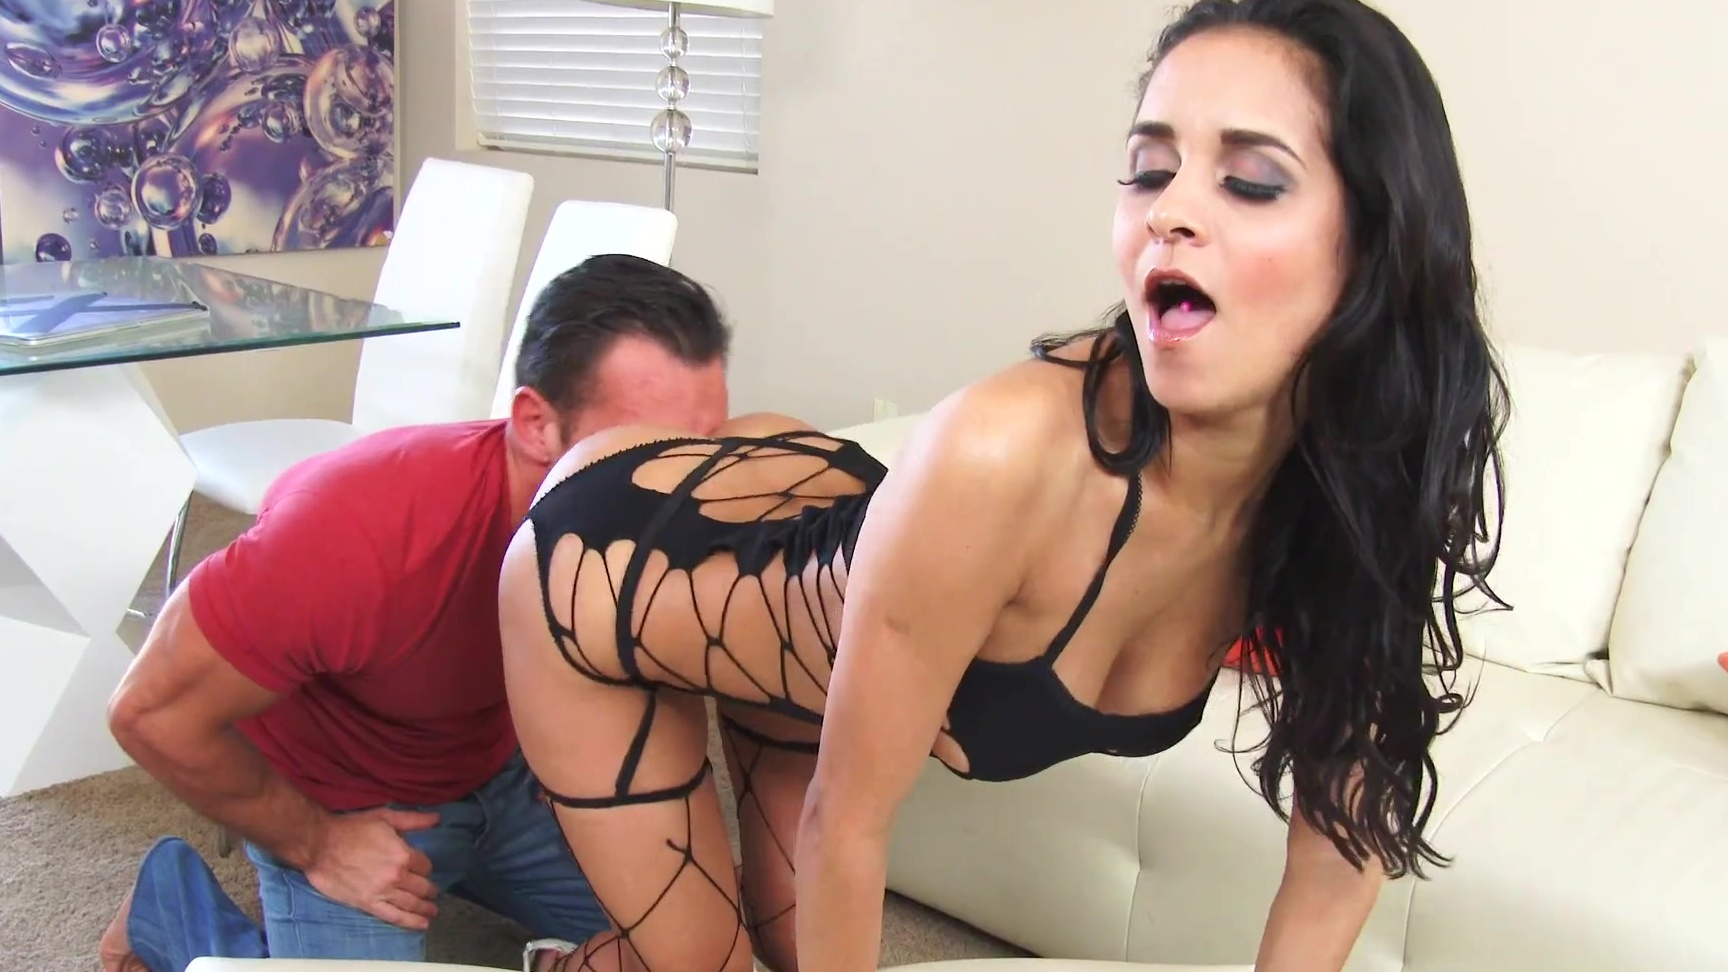 remarkable, the hot dildo deepthroat on cam for that